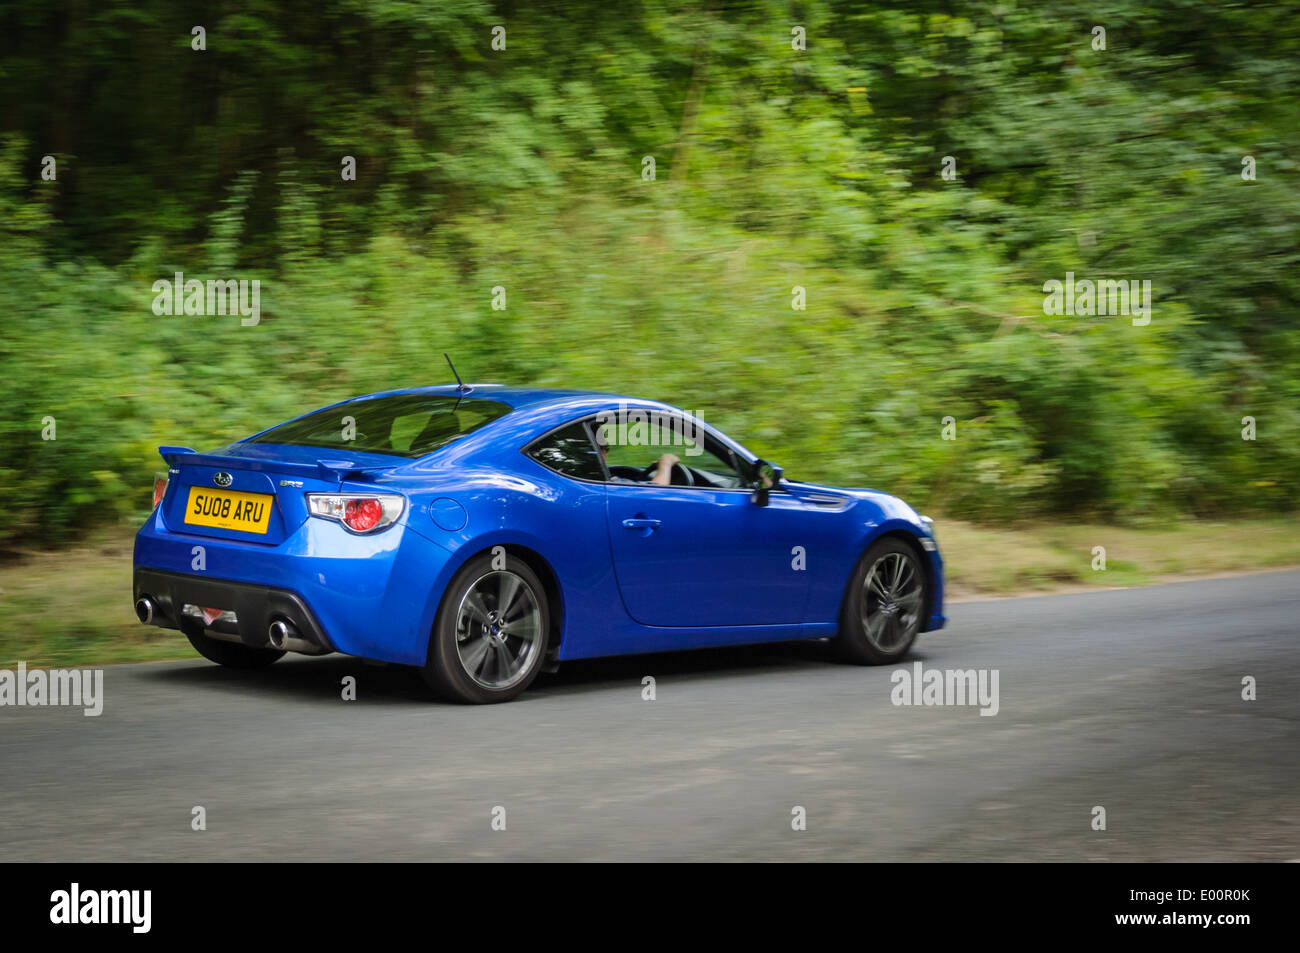 Driving a Subaru BRZ rear wheel drive sports car on an English country road - Stock Image